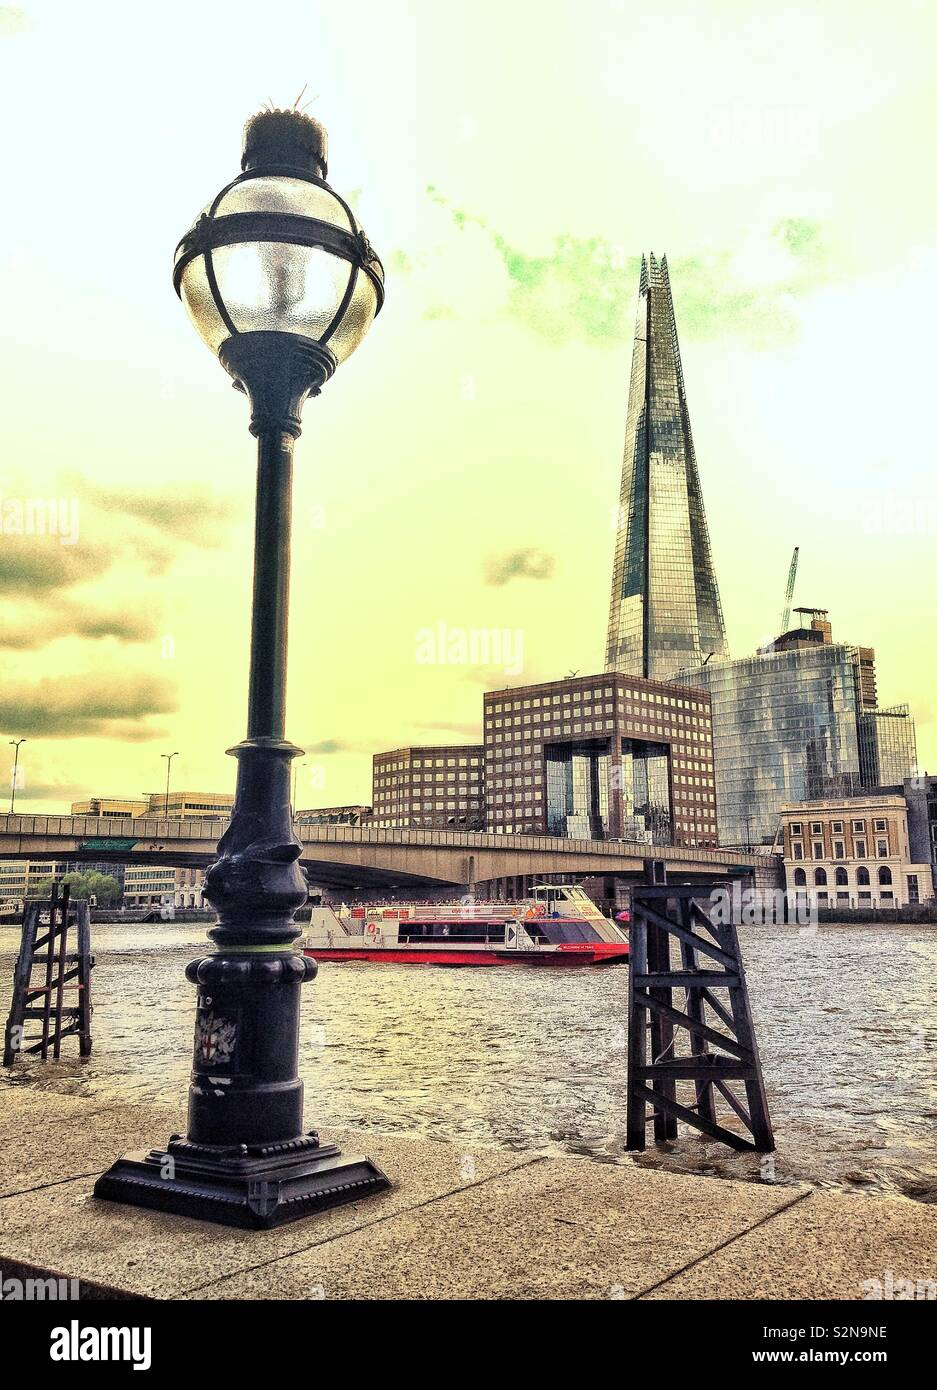 View across the River Thames in London, England, looking towards London Bridge and the Shard. Stock Photo